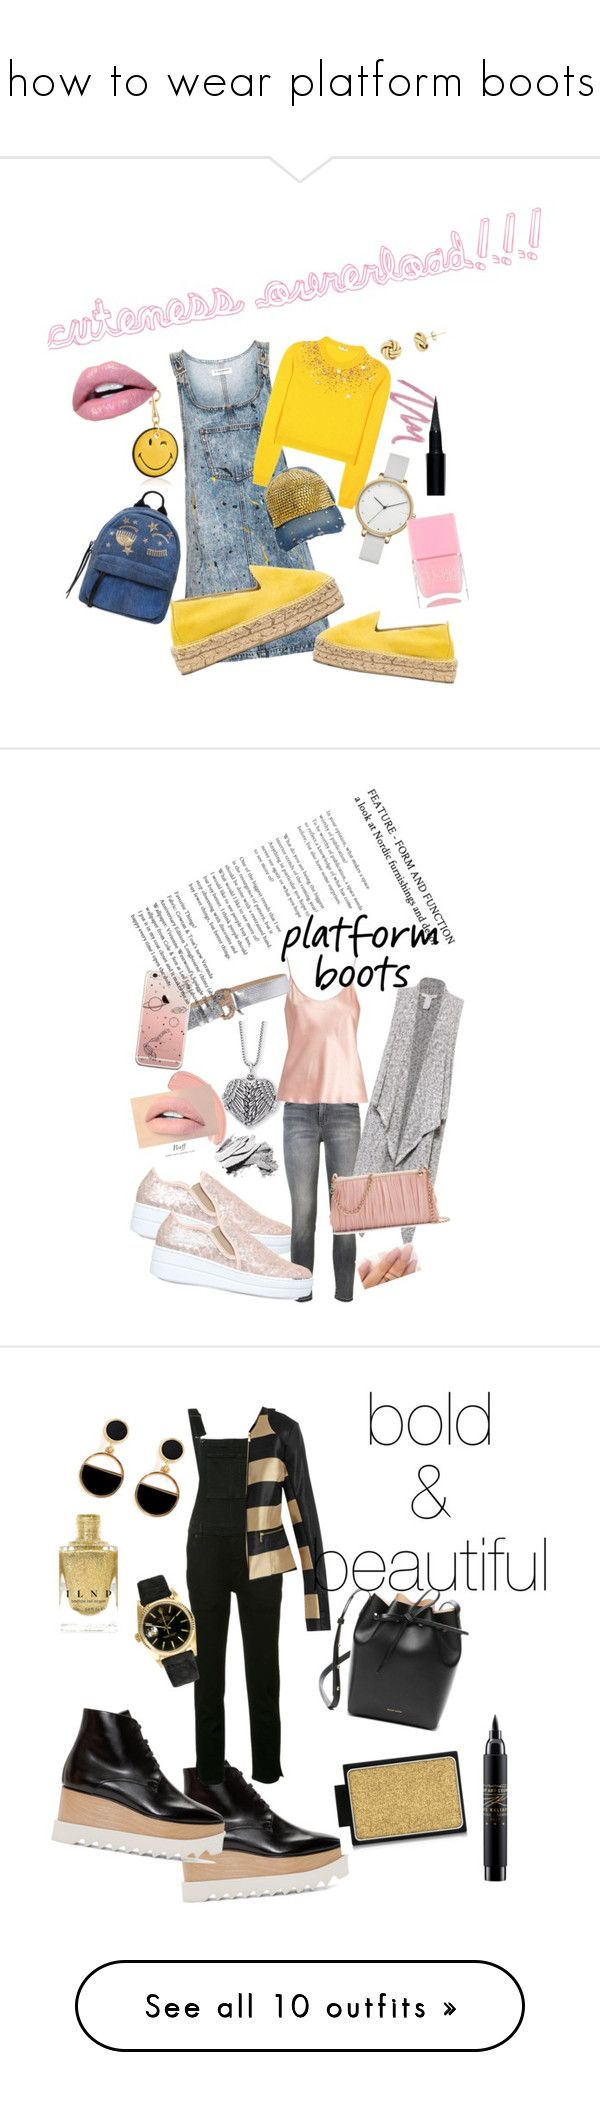 """""""how to wear platform boots"""" by millons ❤ liked on Polyvore featuring Topshop, Miu Miu, Ashley Stewart, Anya Hindmarch, Manebí, Chiara Ferragni, Skagen, Christian Dior, Givenchy and Nails Inc."""